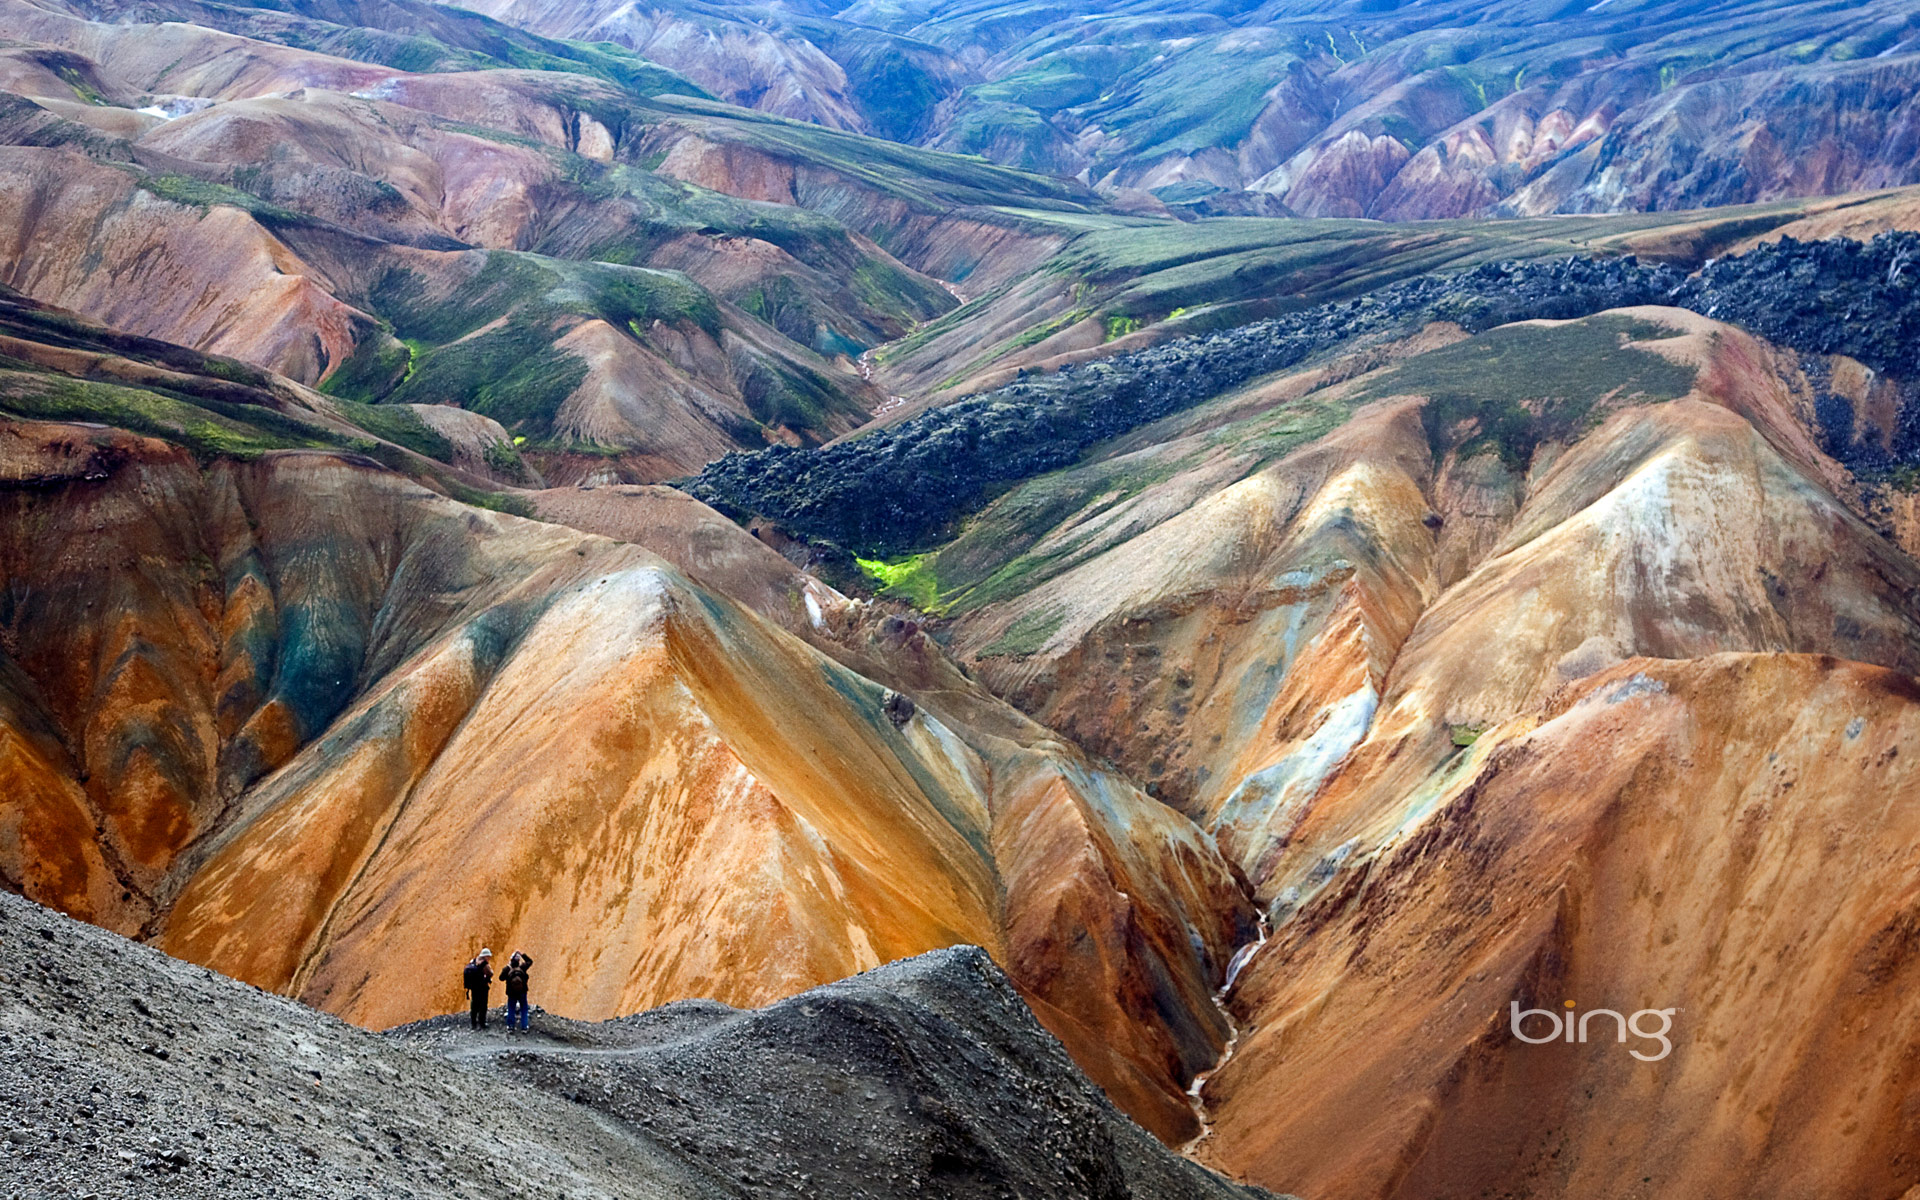 Colorful rhyolite peaks in the Landmannalaugar region of Iceland